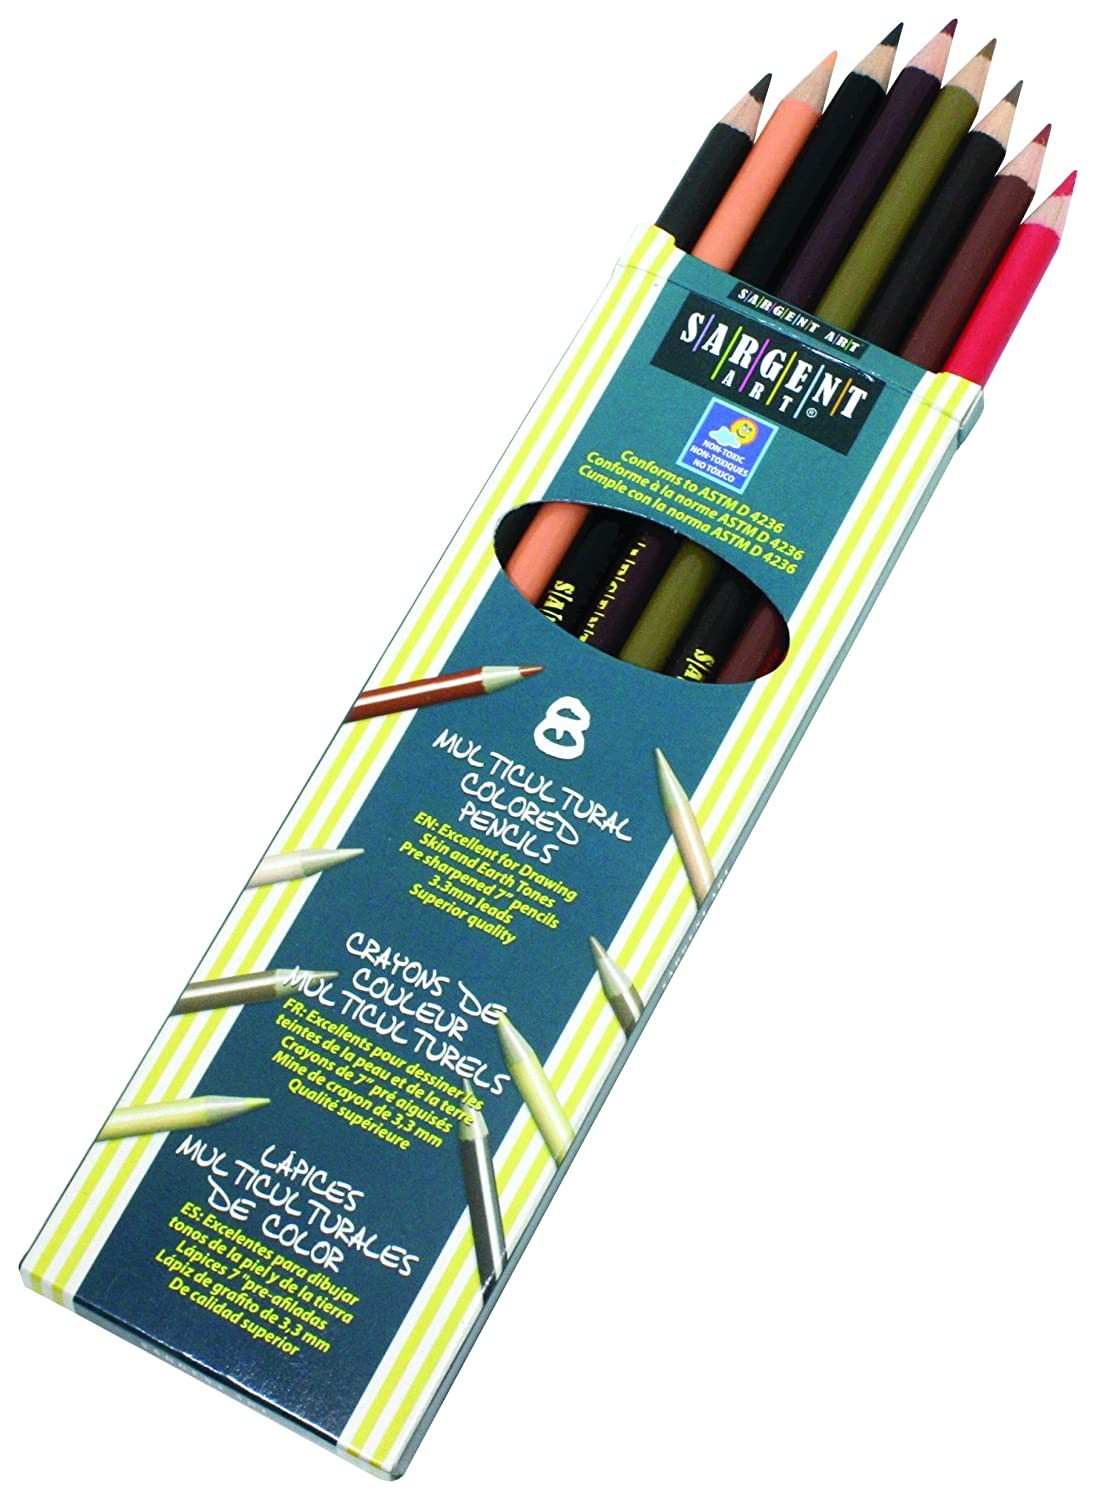 Sargent Art 22–7208 Couleurs de My Friends 8-count Multicultural de crayons de couleur 22-7208